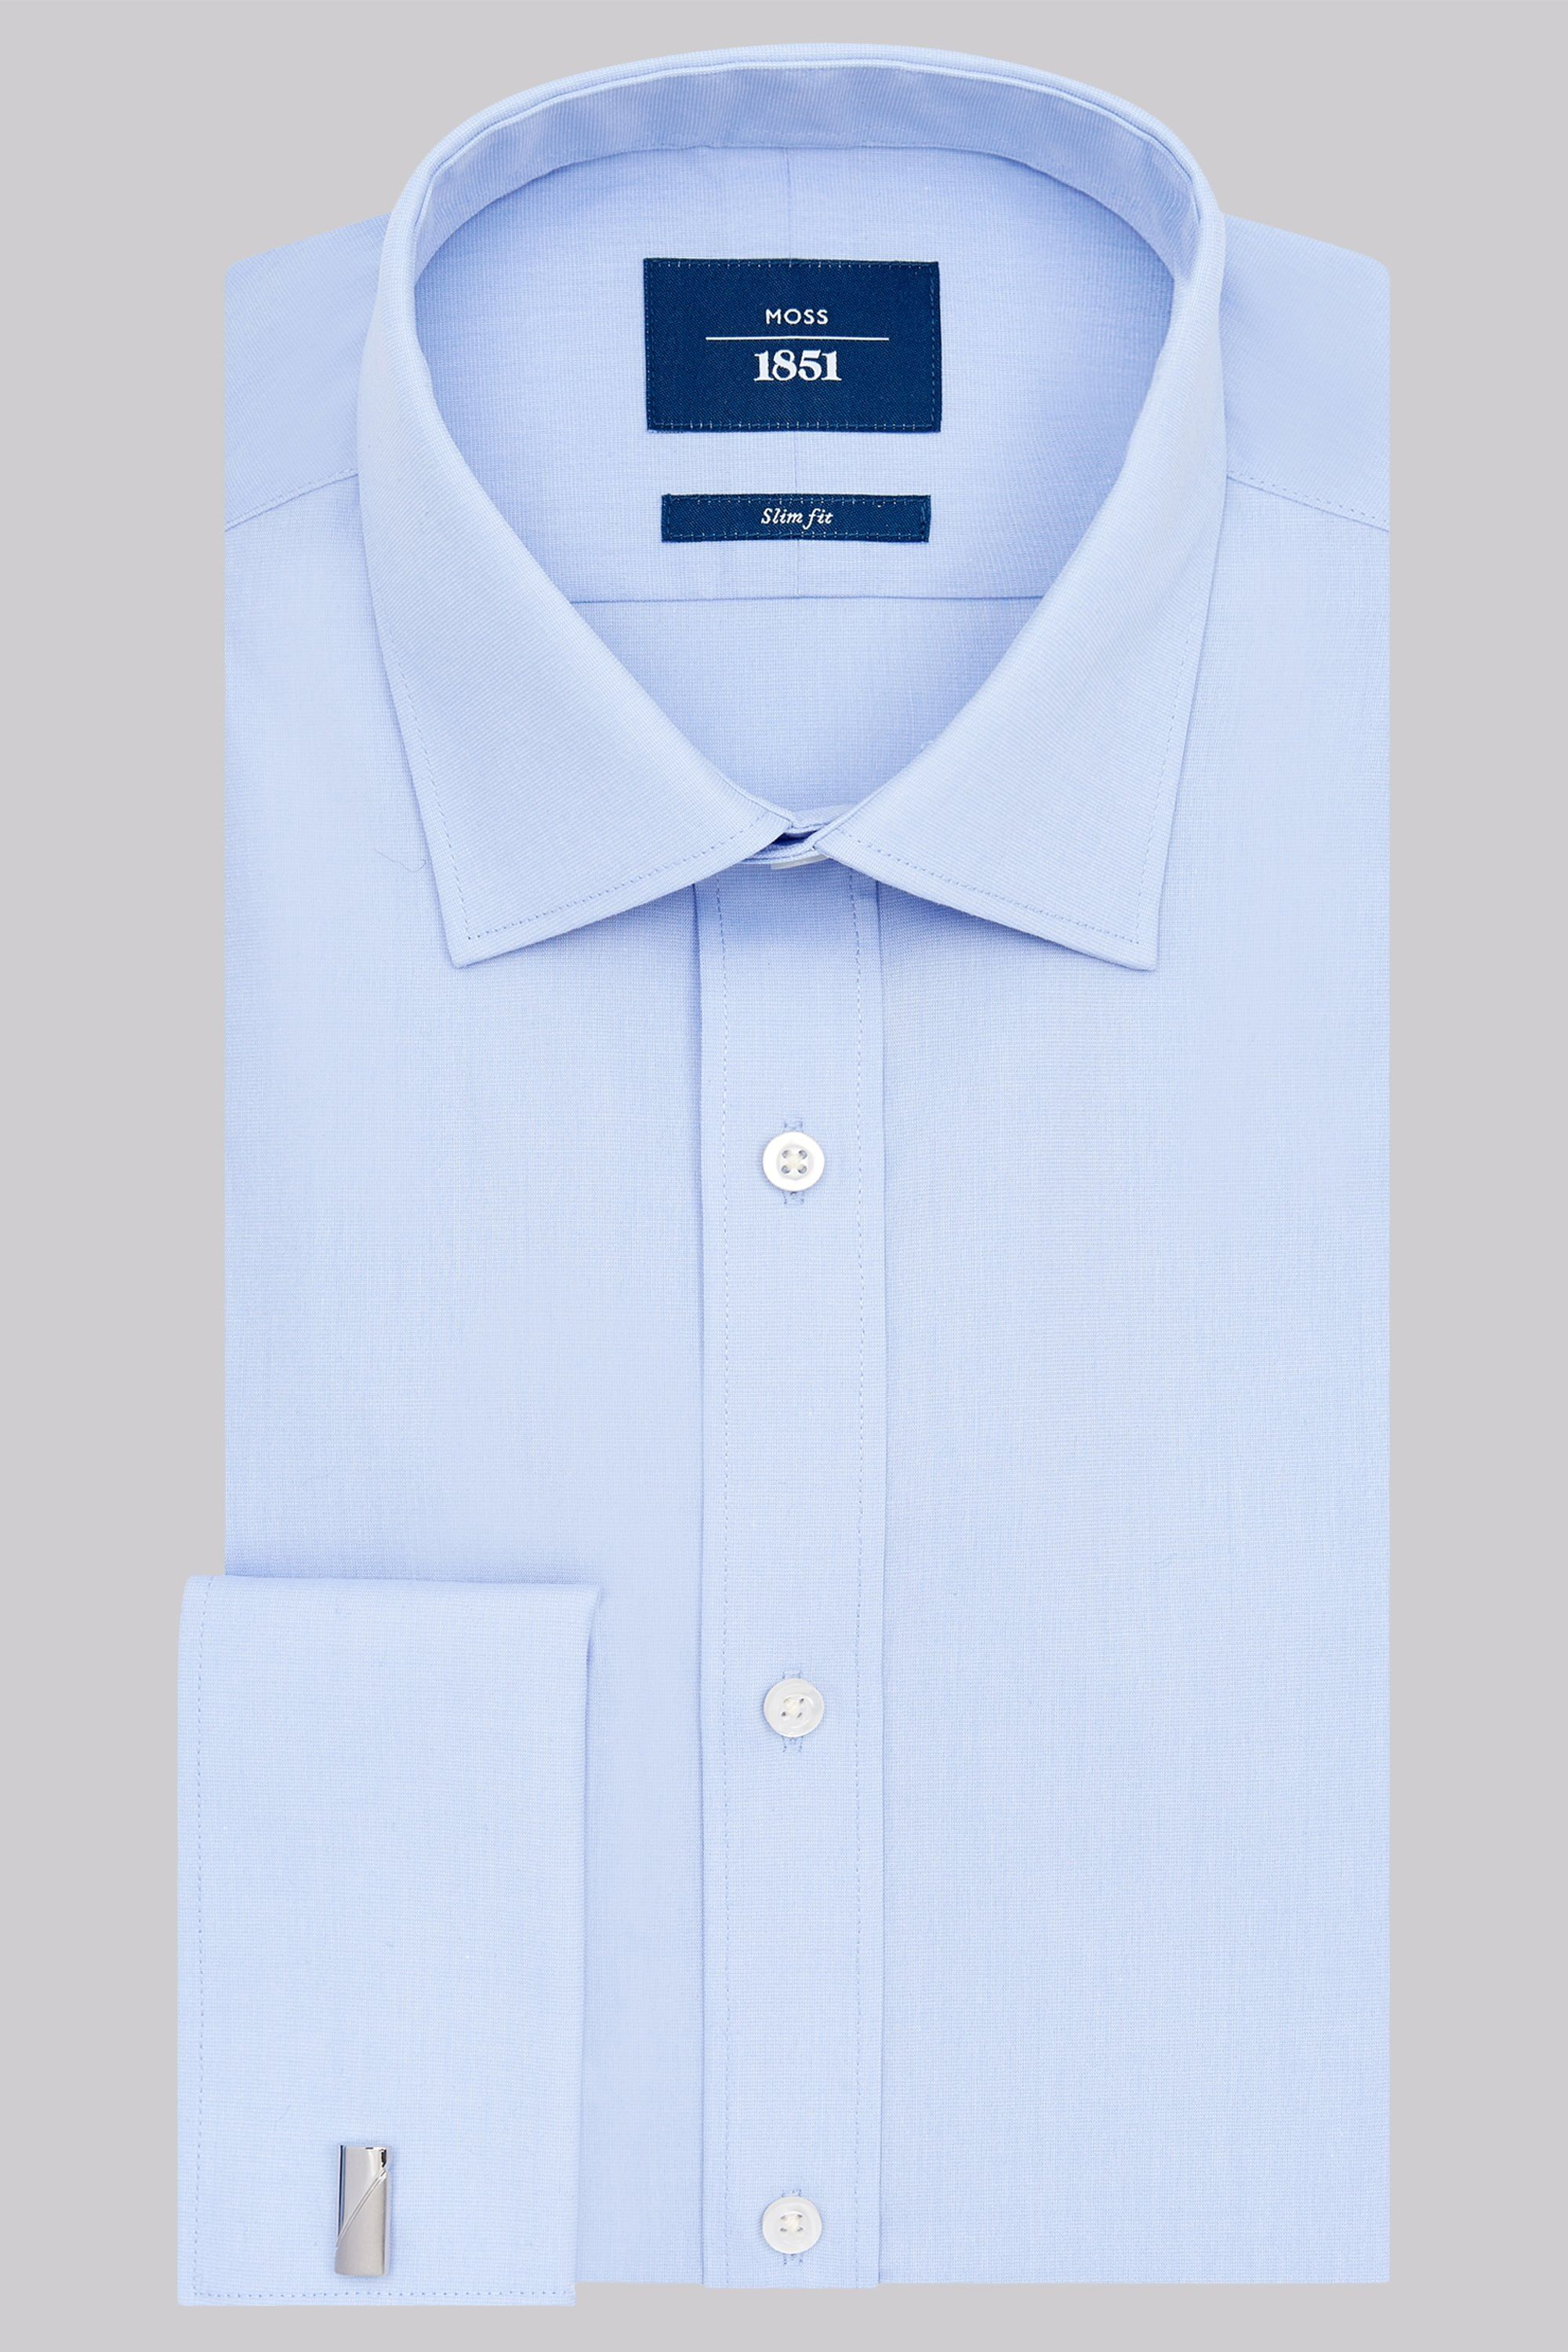 Pin By Jp On Shirts Pinterest Shirts Formal Shirts For Men And